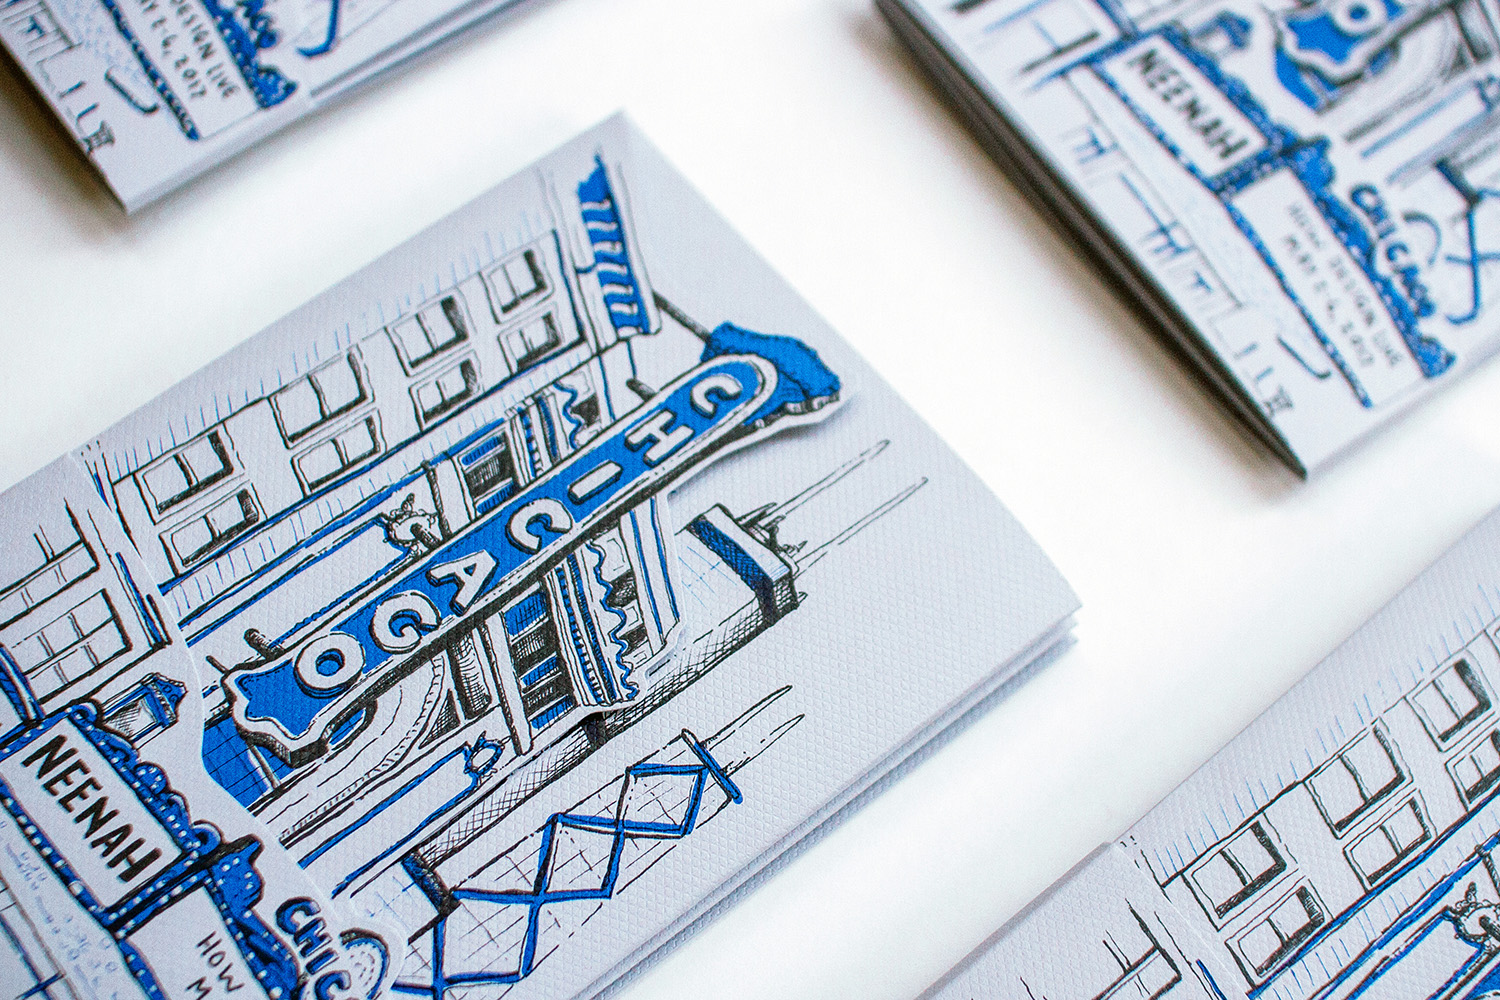 Graphic designer Russell Shaw created this multi panel custom diecut cover that shows an illustrated Chicago Theater on top with a hand drawn Chicago skyline behind it.